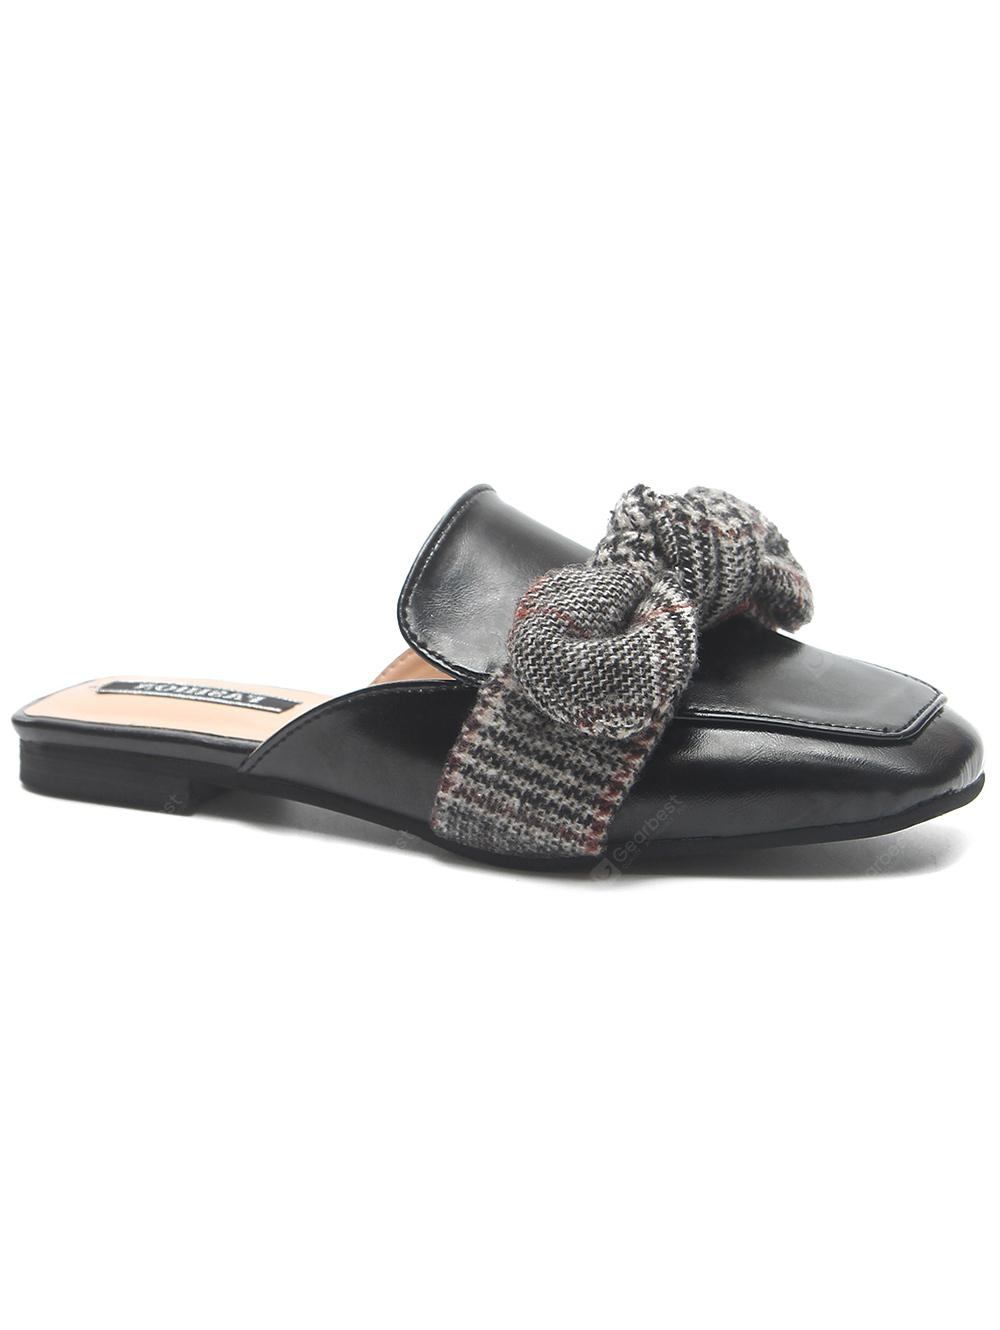 PU Leather Square Toe Bowknot Mules Shoes